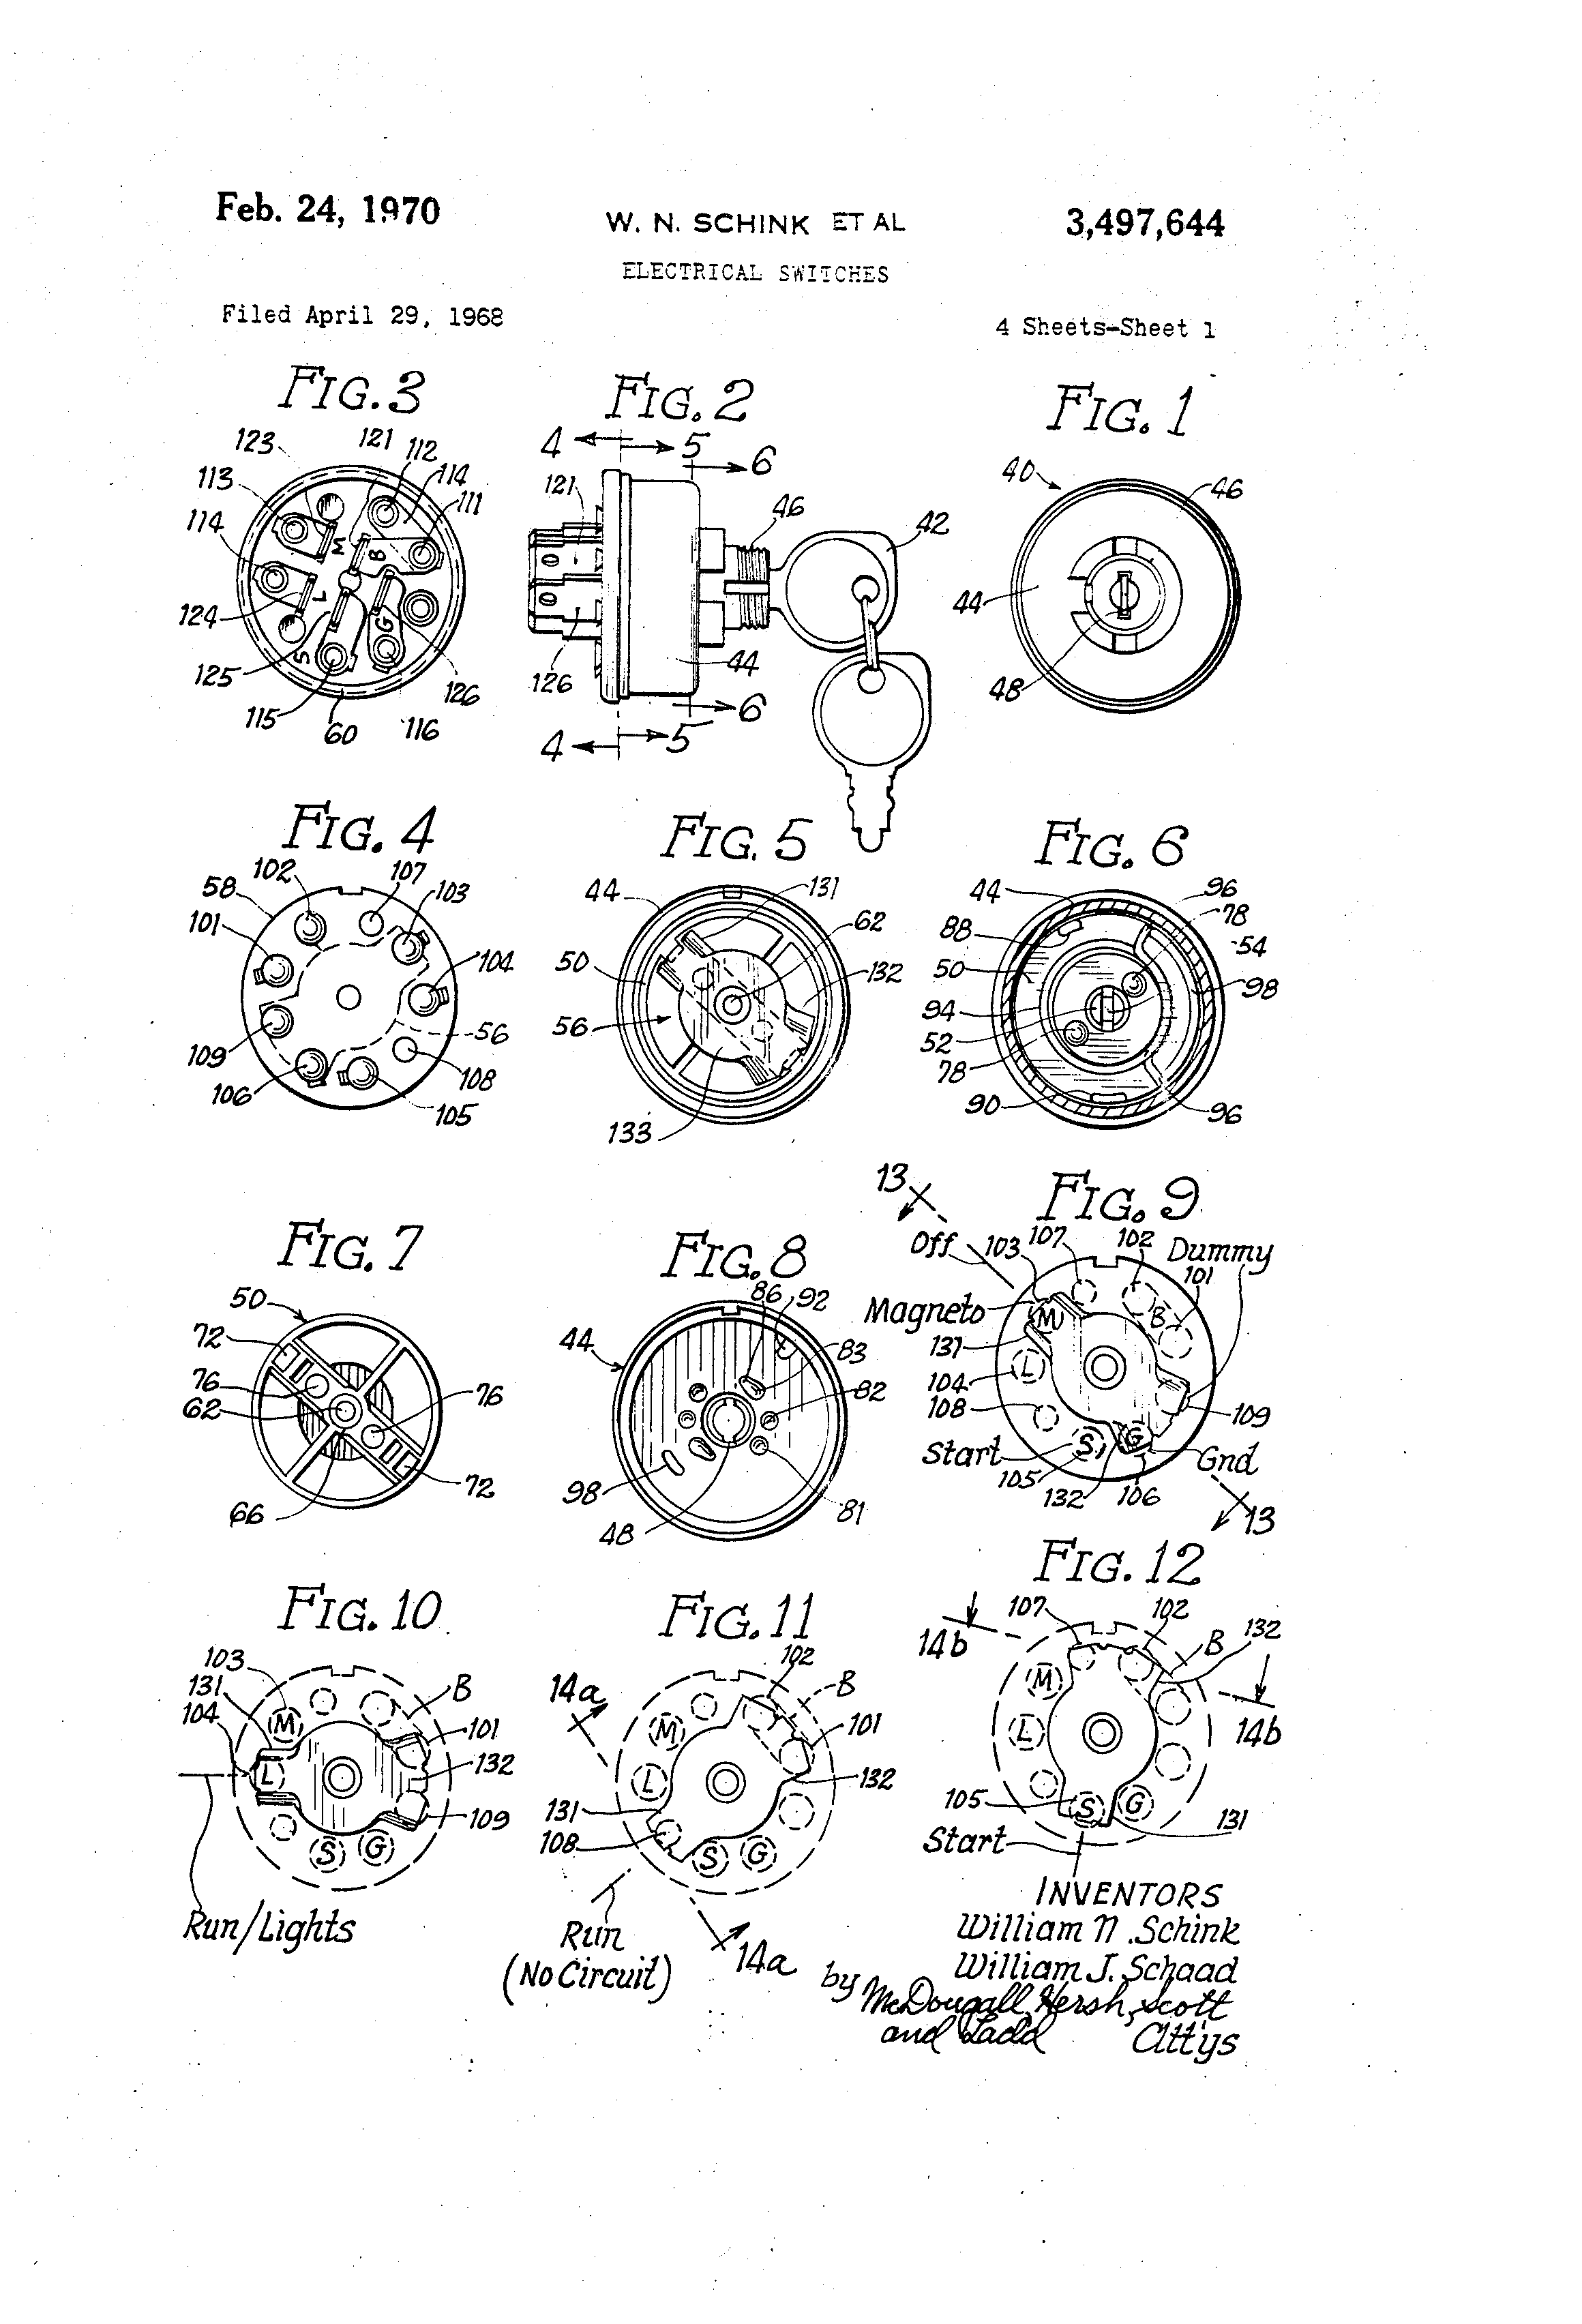 Delta Systems Ignition Switch Wiring Diagram 44 Chrysler 115 Patent Us3497644 Electrical Switches Google Patents